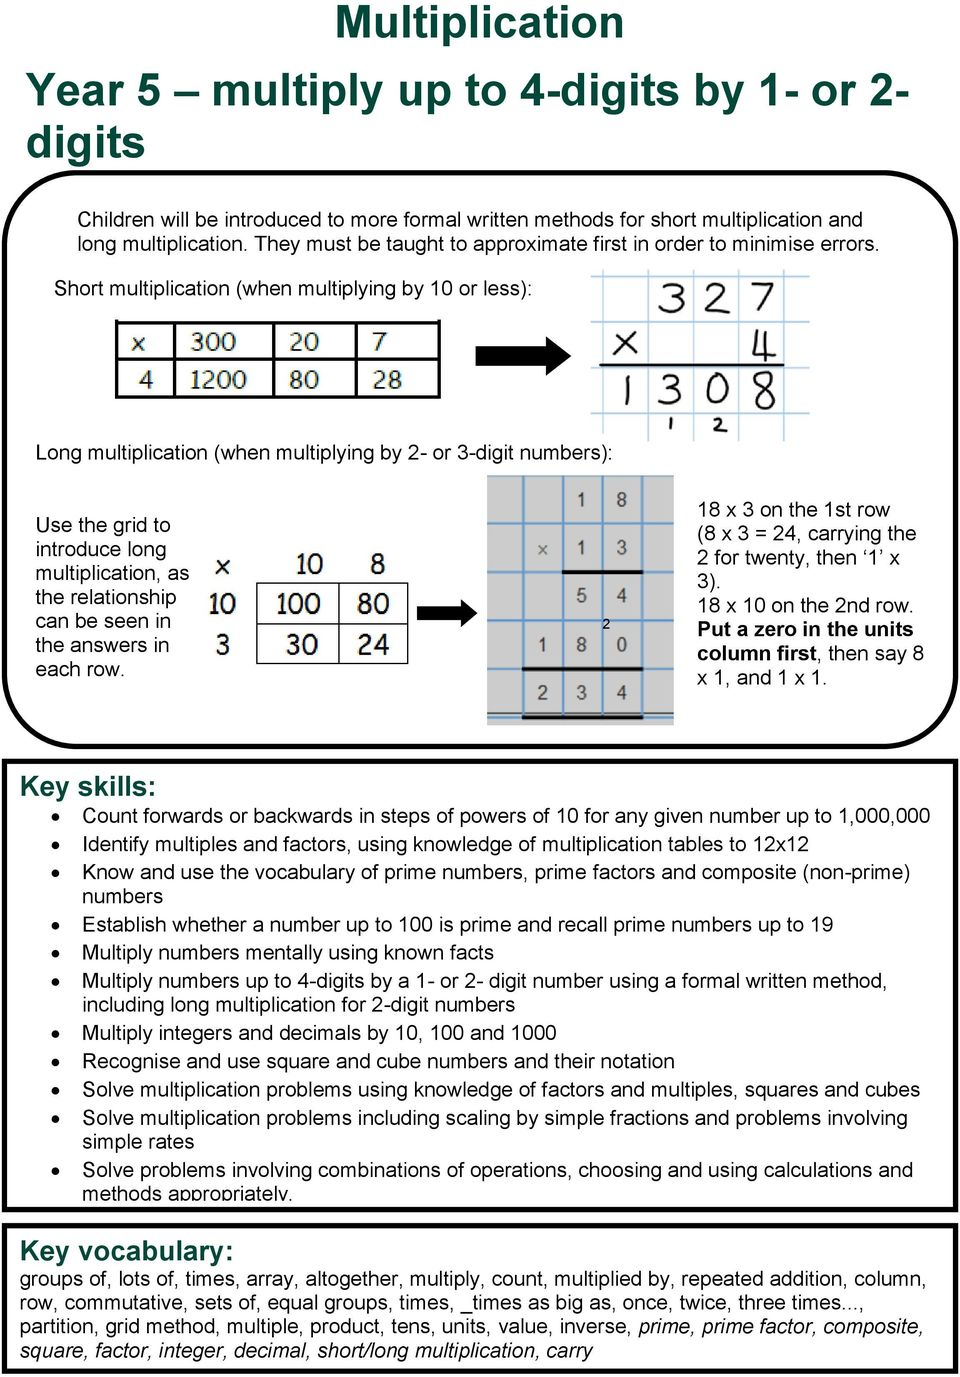 Short multiplication (when multiplying by 10 or less): Long multiplication (when multiplying by 2- or 3-digit numbers): Use the grid to introduce long multiplication, as the relationship can be seen